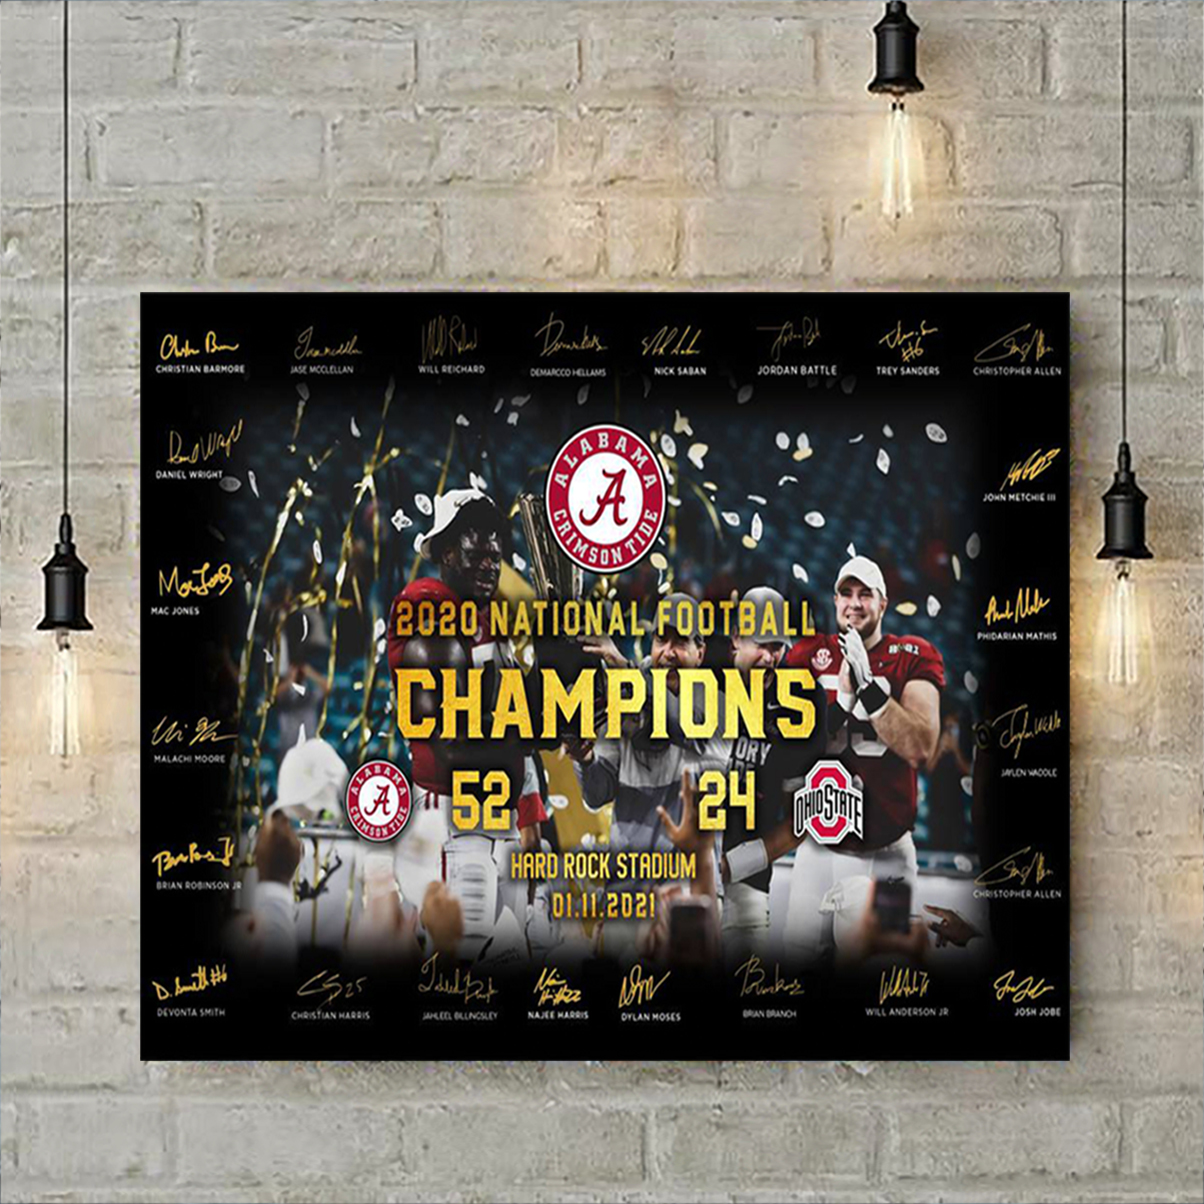 Alabama crimson tide 2020 national football champion poster A1